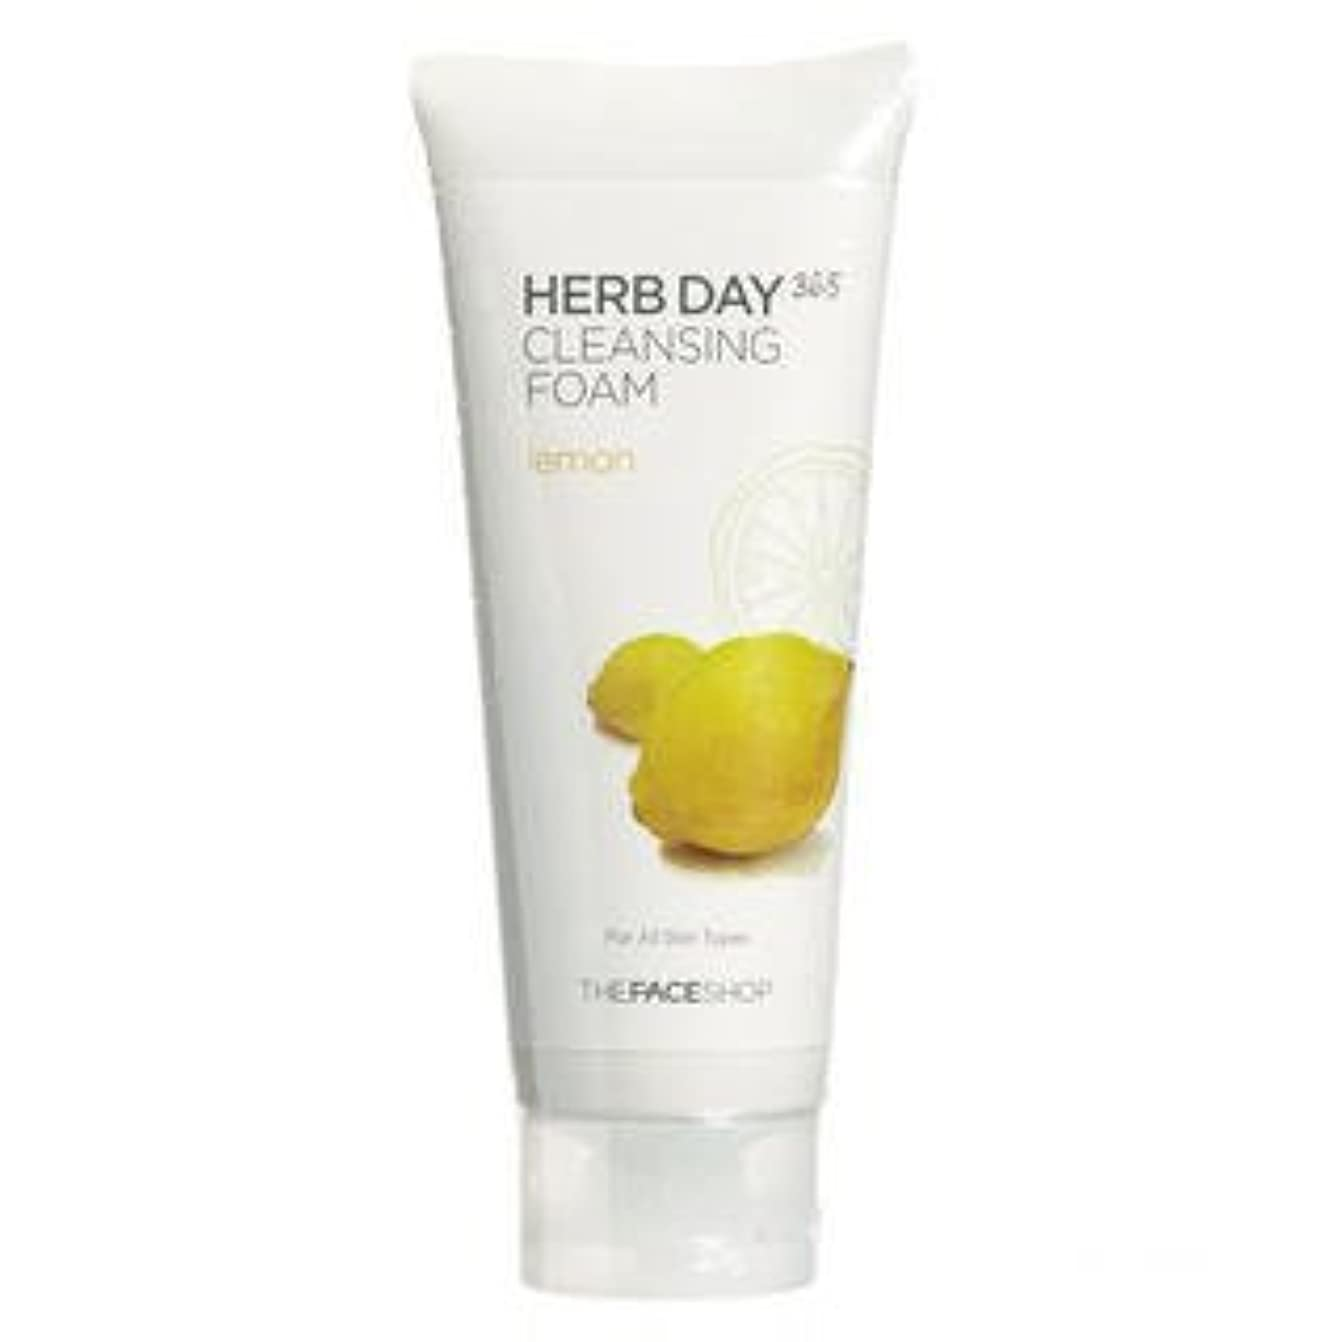 理容師大胆不敵活気づけるThe Face Shop - Herb Day Cleansing Cleansing Foam (Lemon)170ml /Made in Korea